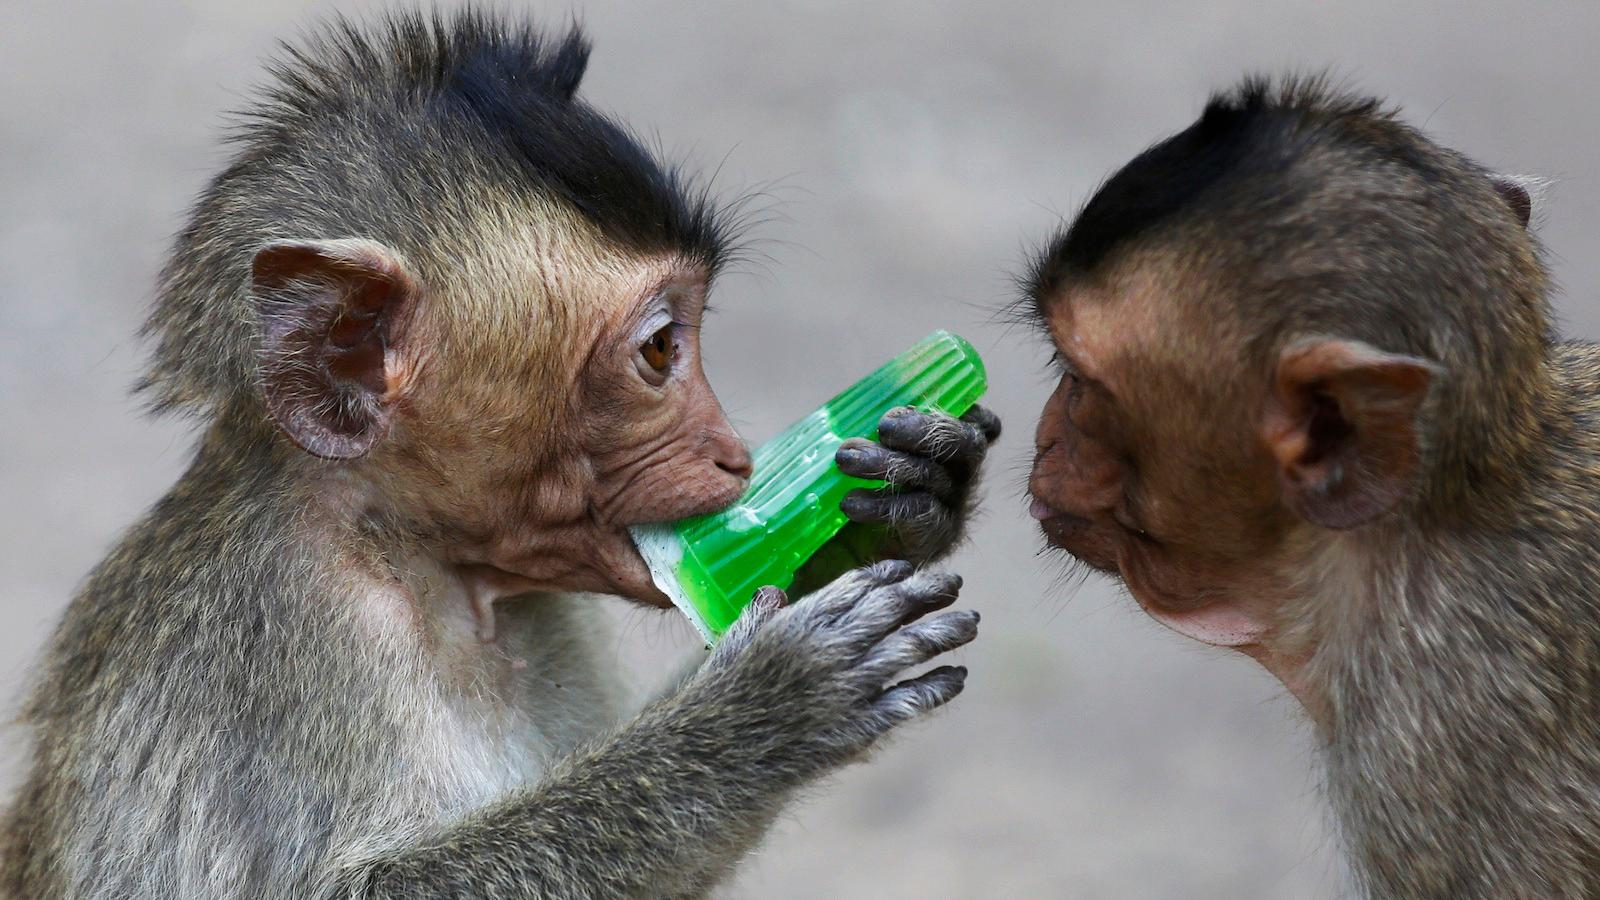 Why Monkeys Choose to Drink Alone